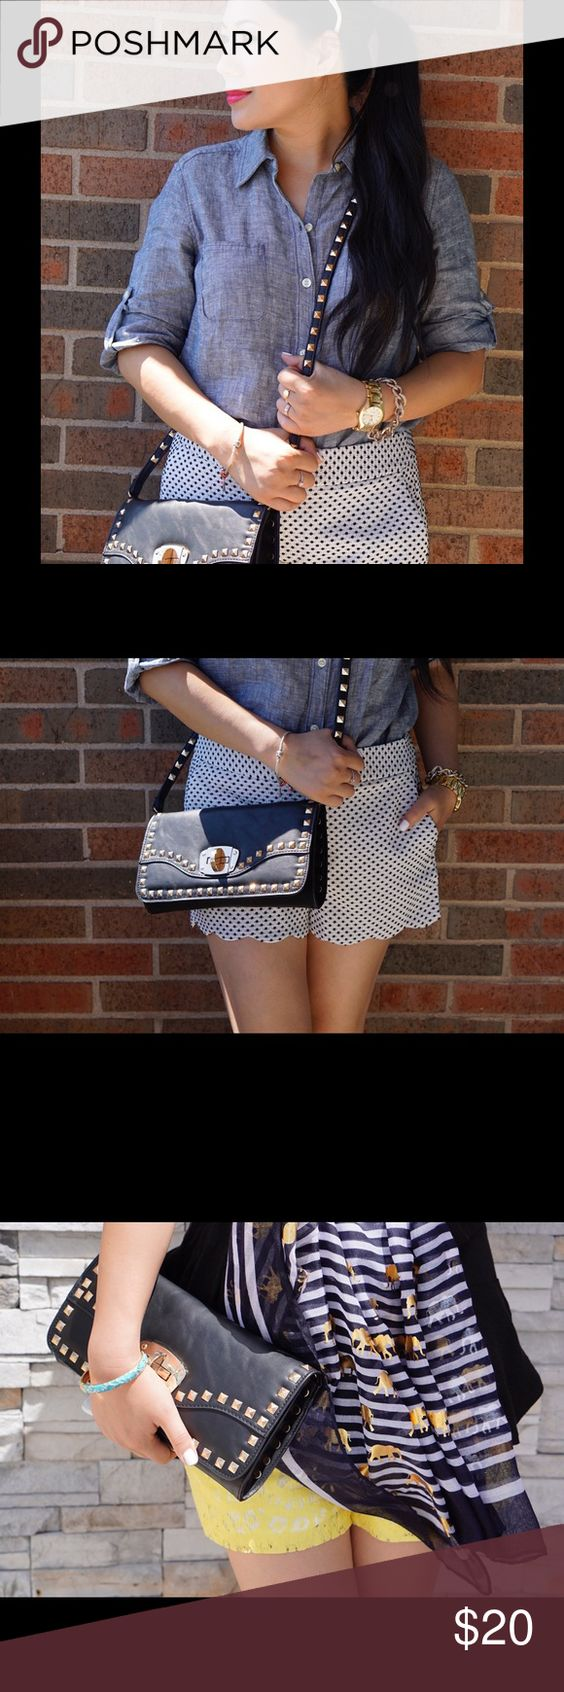 Black studded cross body bag / clutch Almost new! Only used for blog photos! Bags Clutches & Wristlets